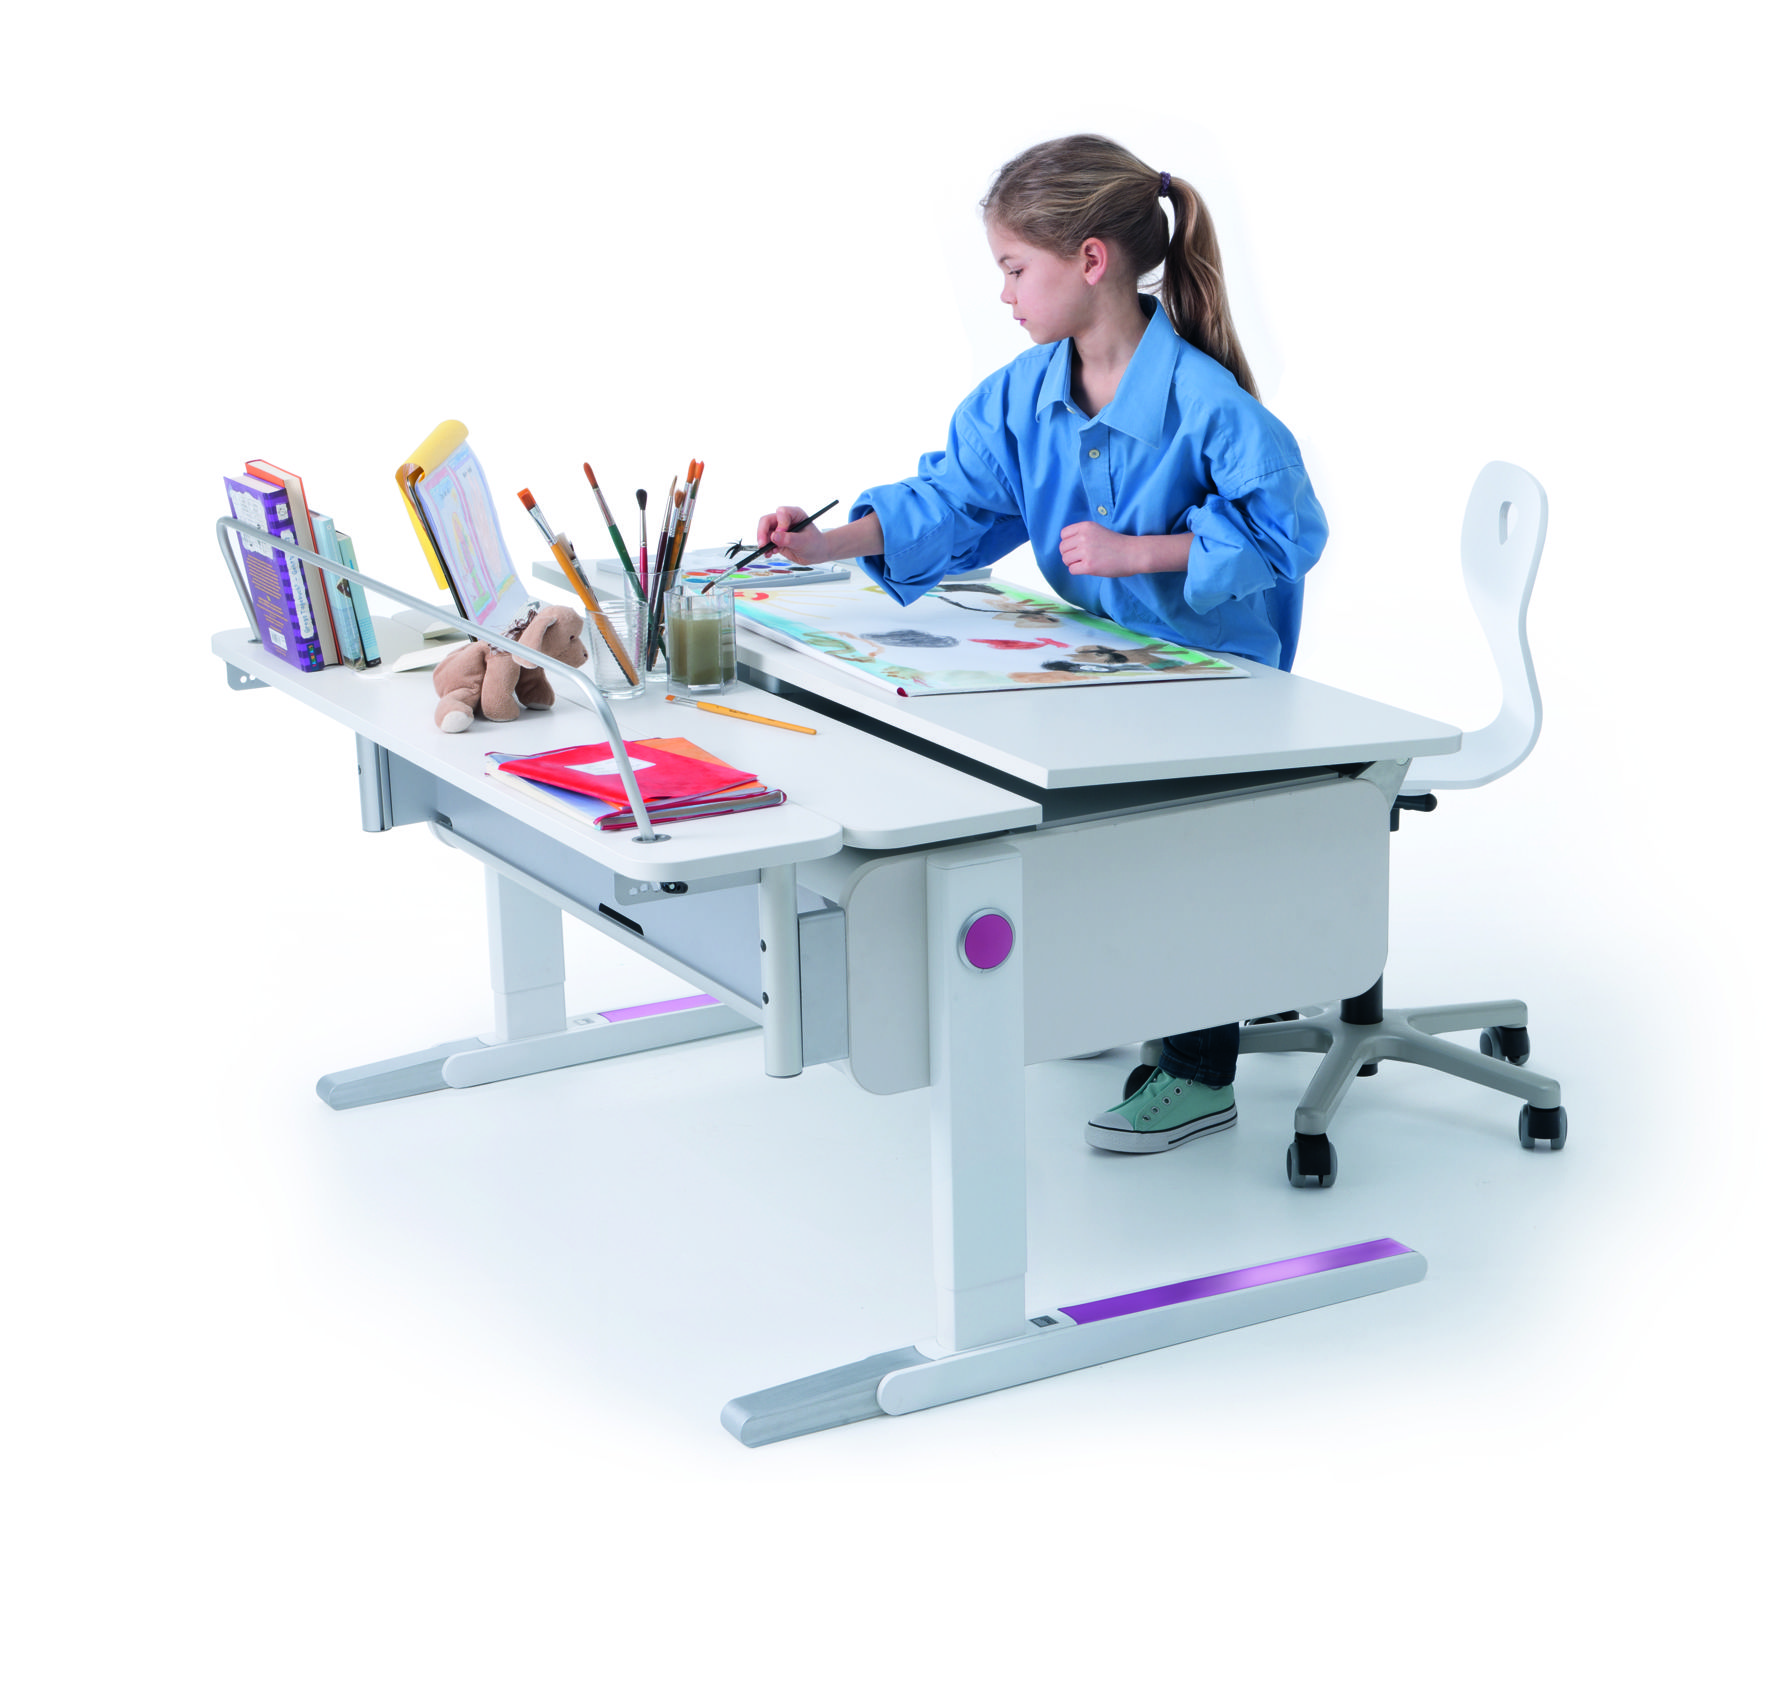 The Moll Champion Desk With The Tft Deck Kids Study Desk Desk Chair Covers Kids Desk Chair